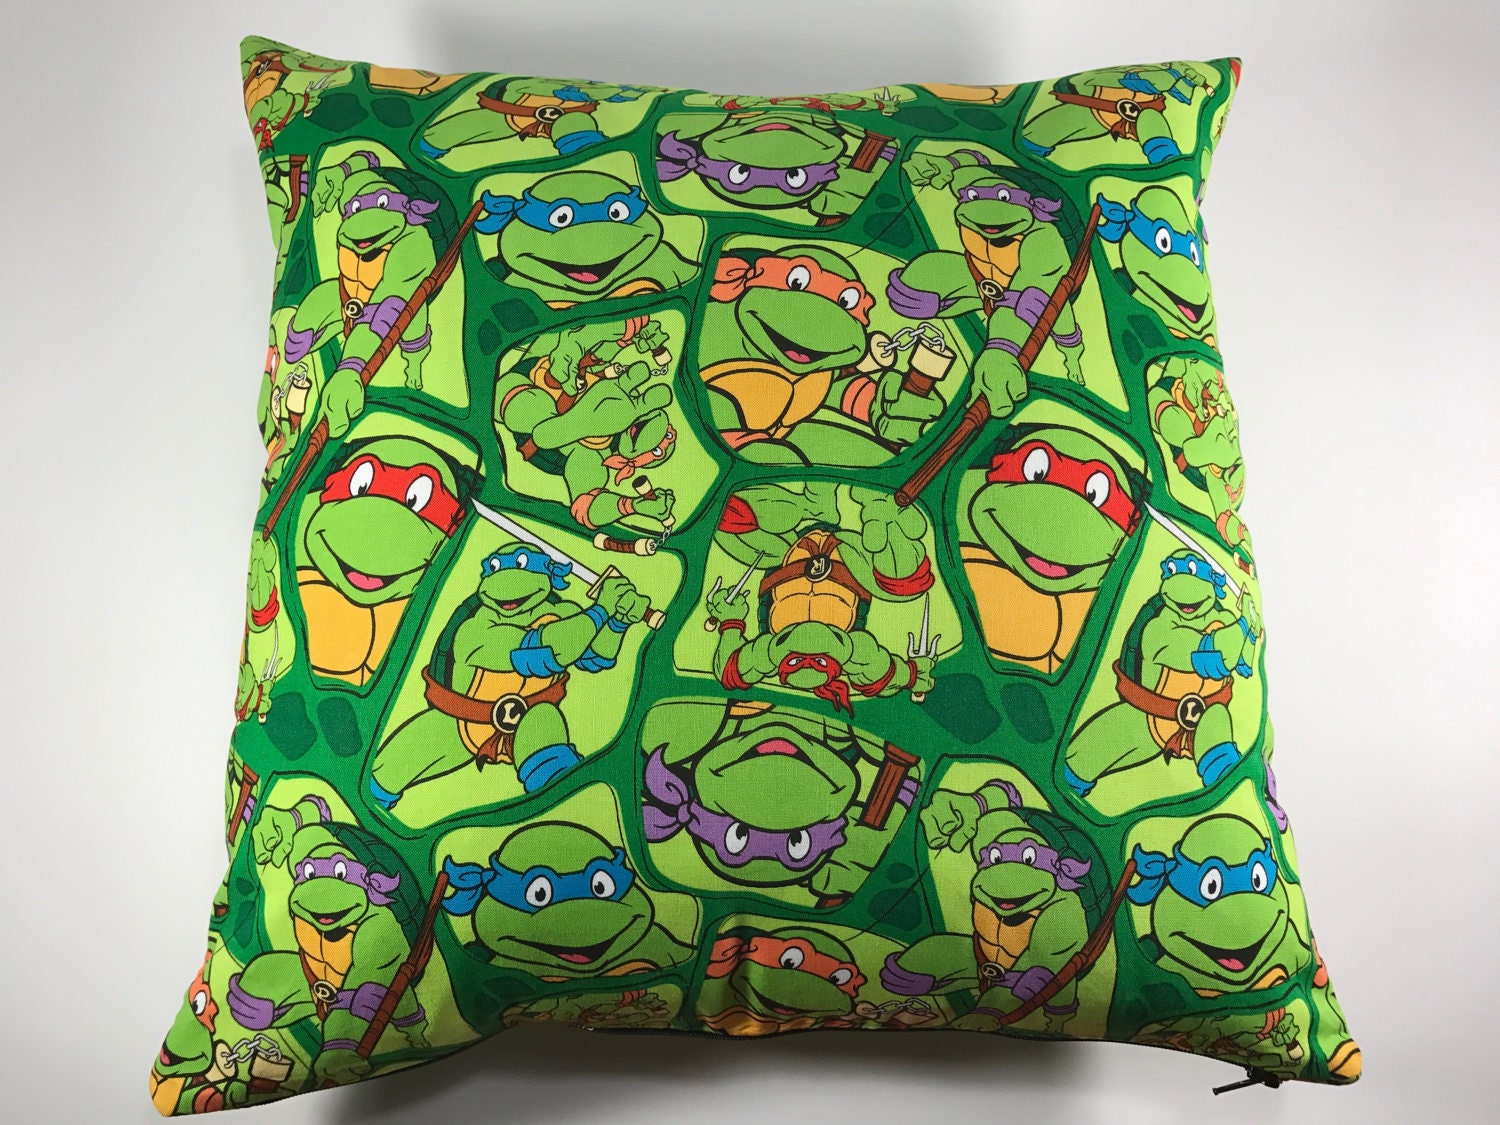 Ninja Turtle Decorative Pillow : Toss Pillow Teenage Mutant Ninja Turtles TMNT Decorative